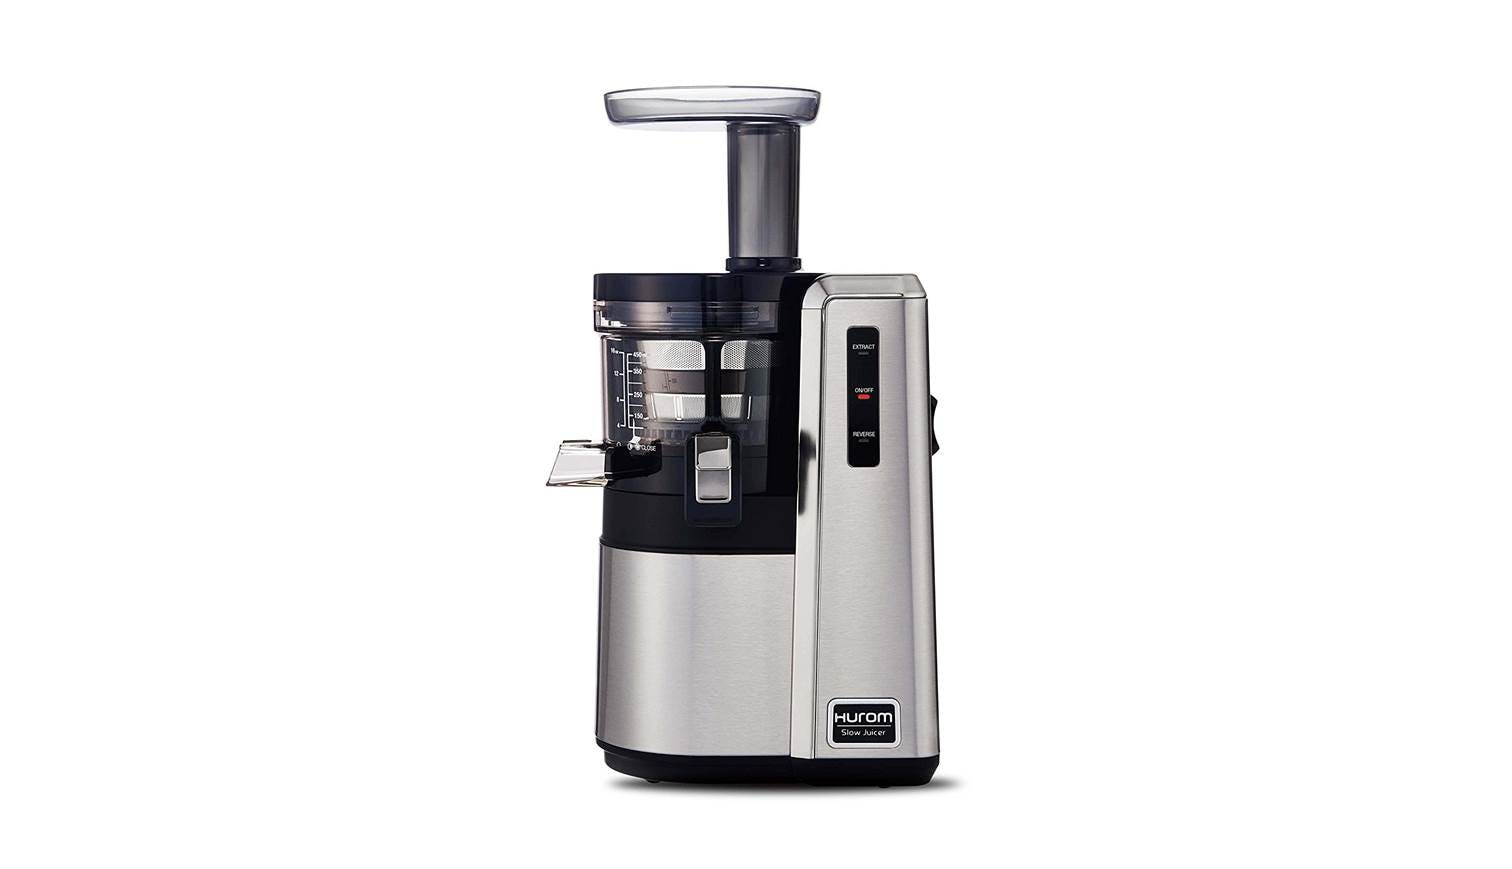 Hurom HZ2500S Slow Juicer Harvey Norman Singapore